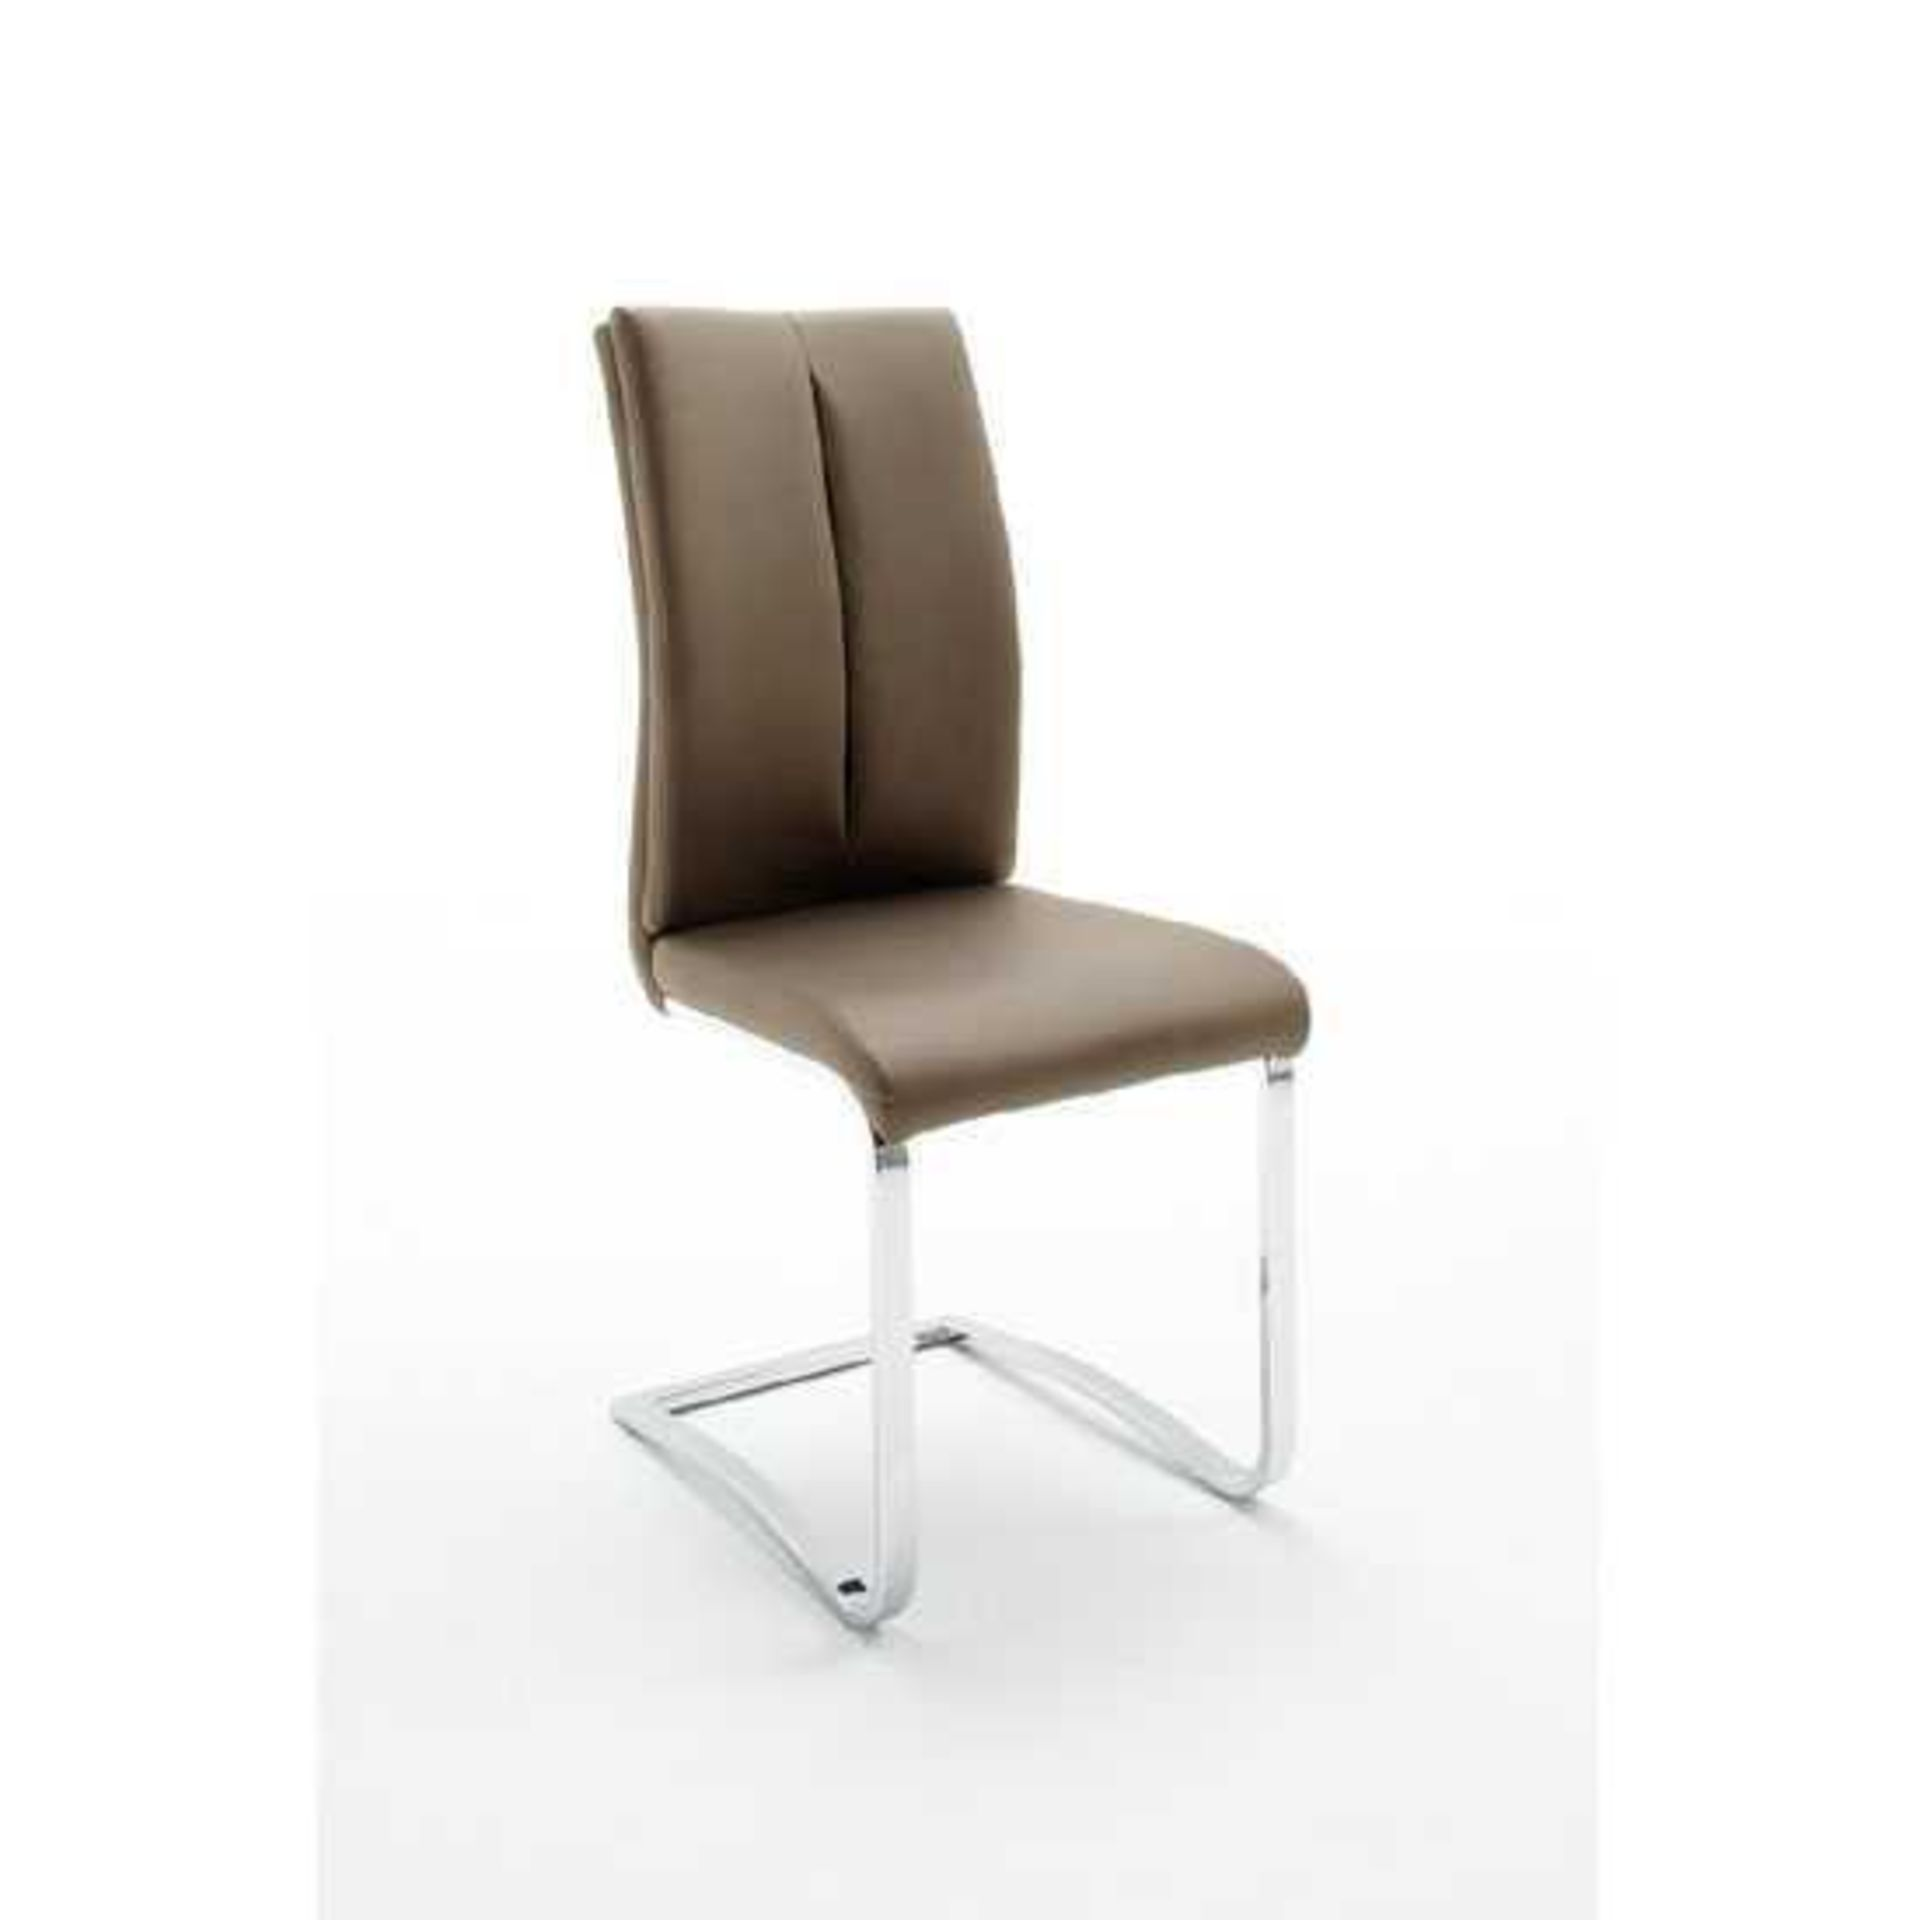 RRP £200 - Boxed 2 'Tavis' Cappuccino Dining Chairs (Appraisals Available On Request) (Pictures